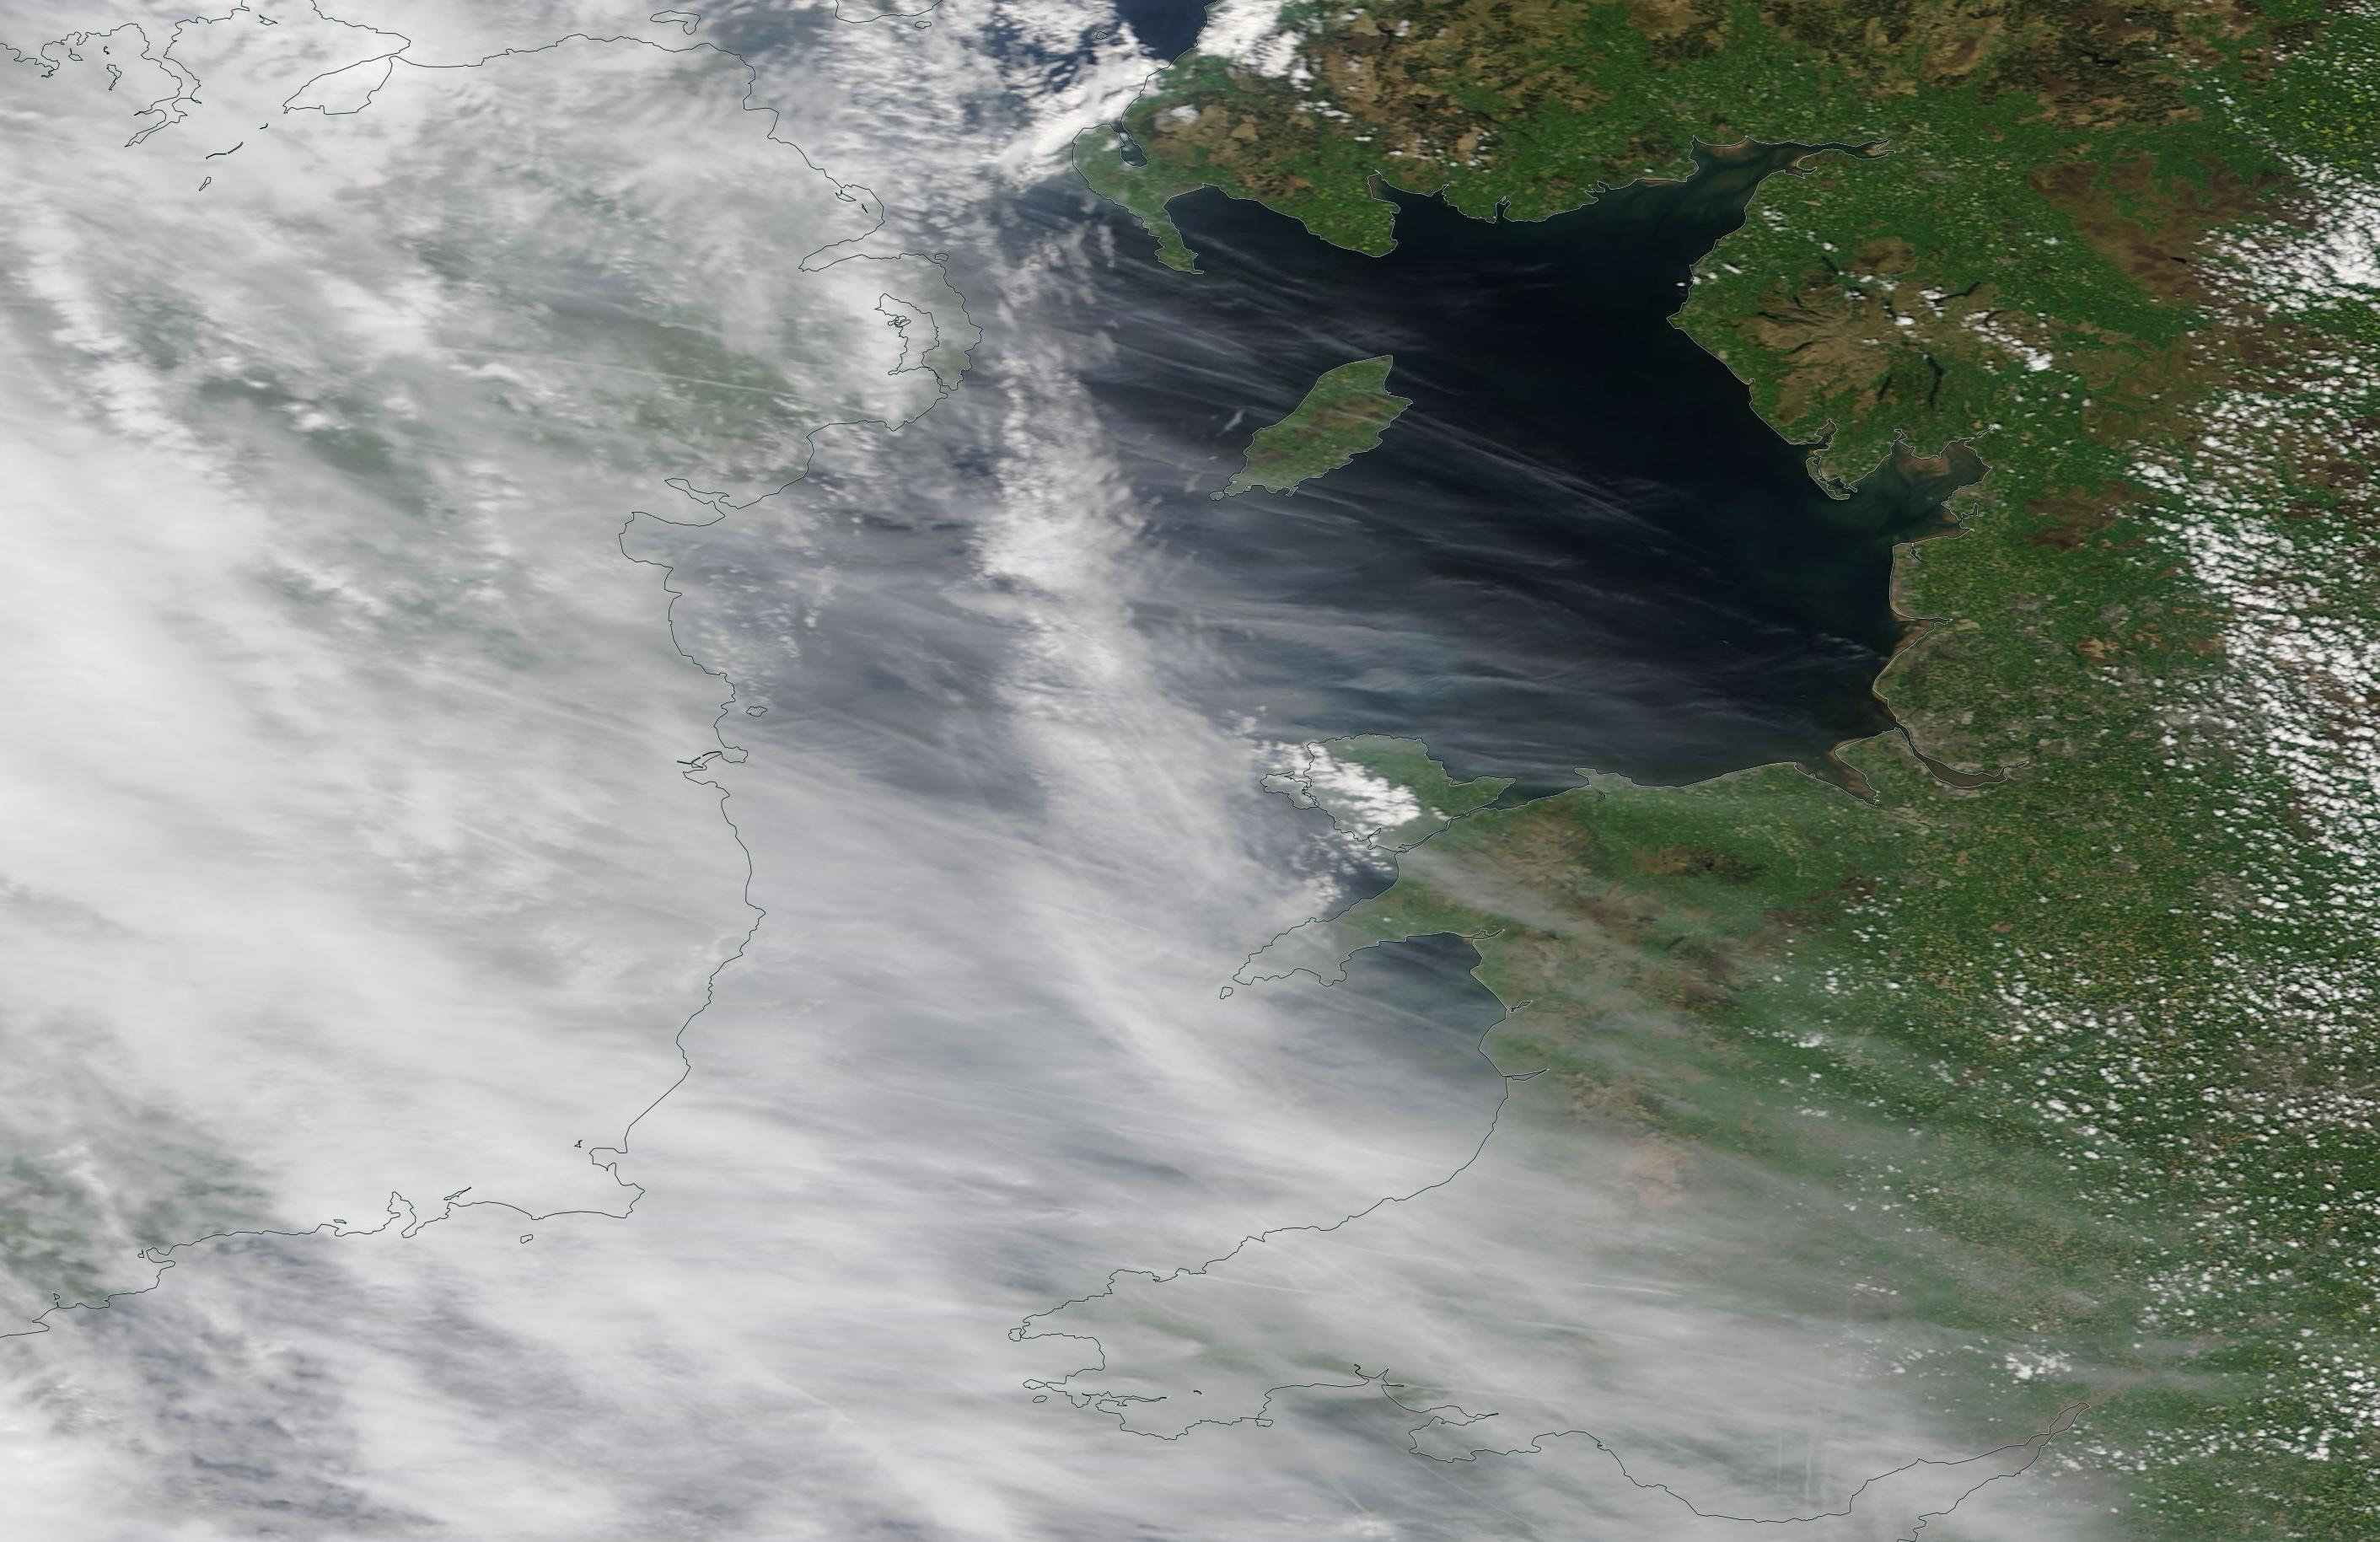 Irish Sea chemtrail geoengineering 16 May 2019 ... https://go.nasa.gov/2Ef8RZw